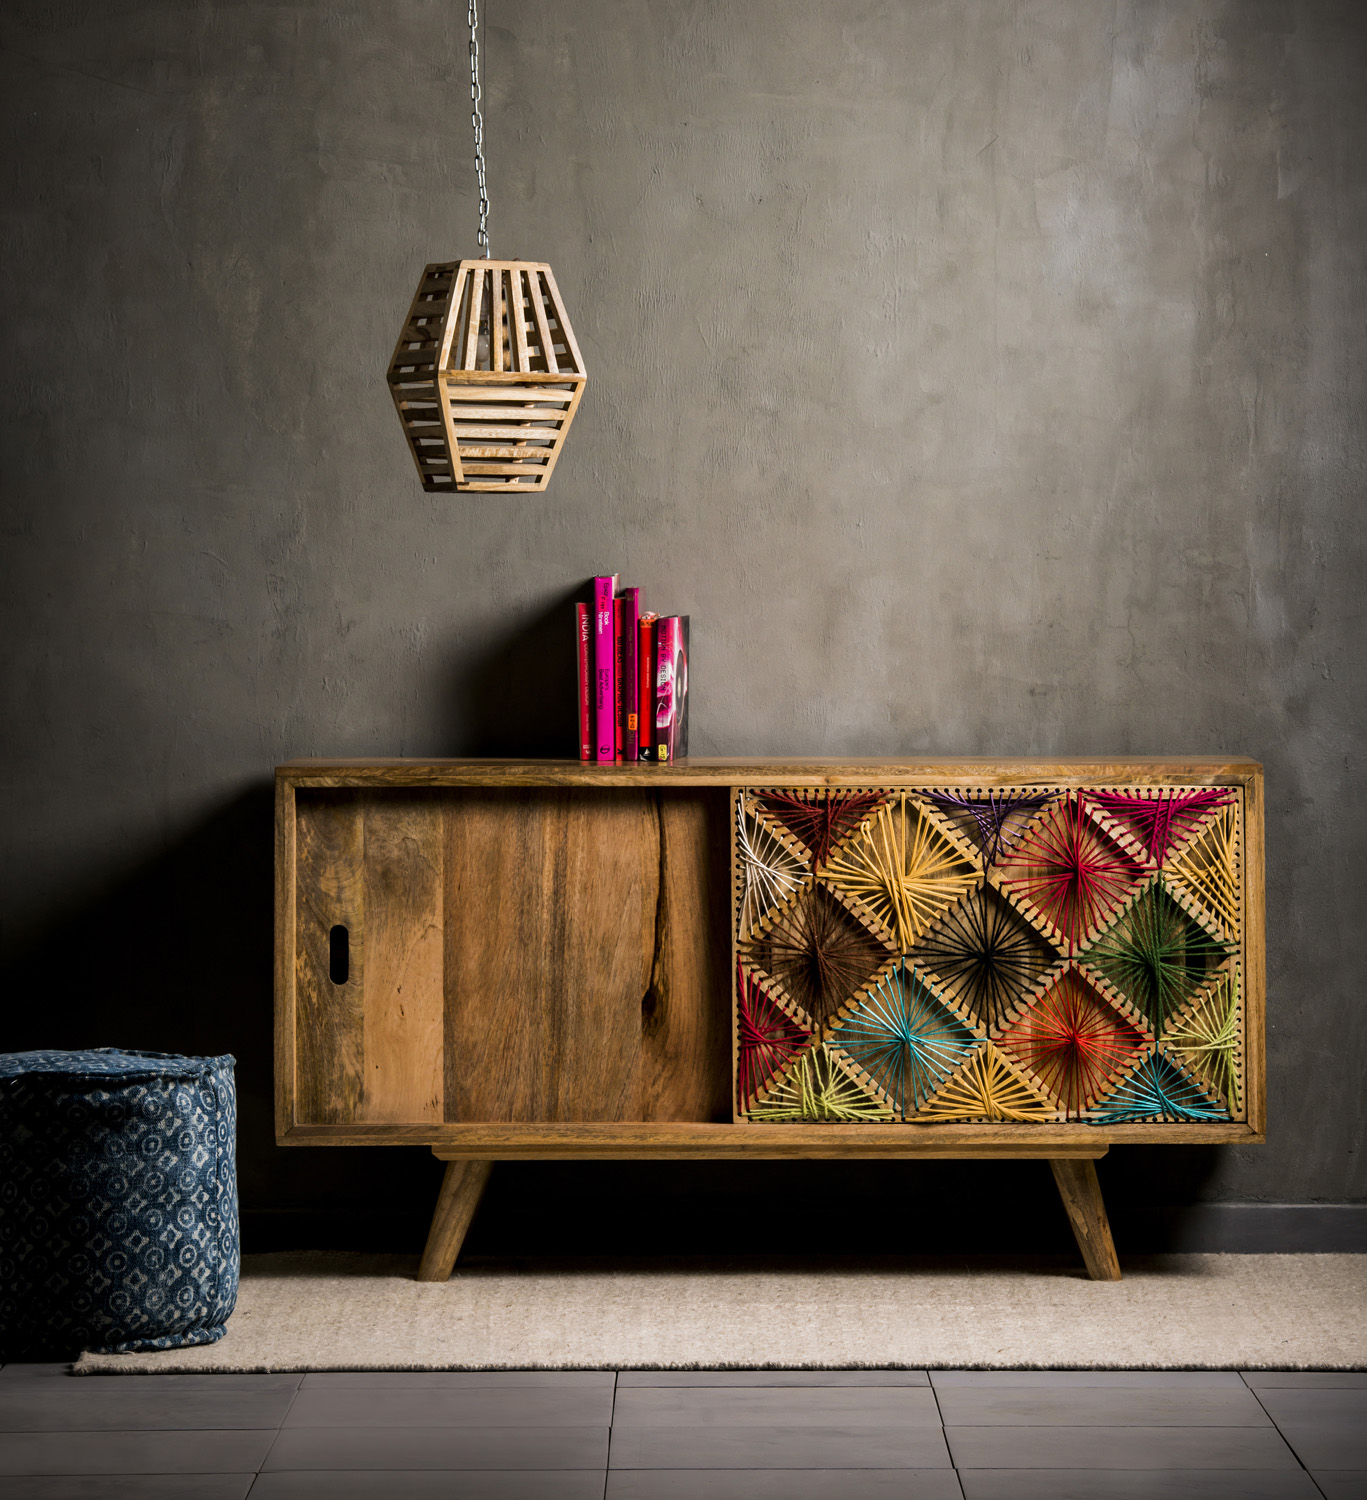 furniture from online shops